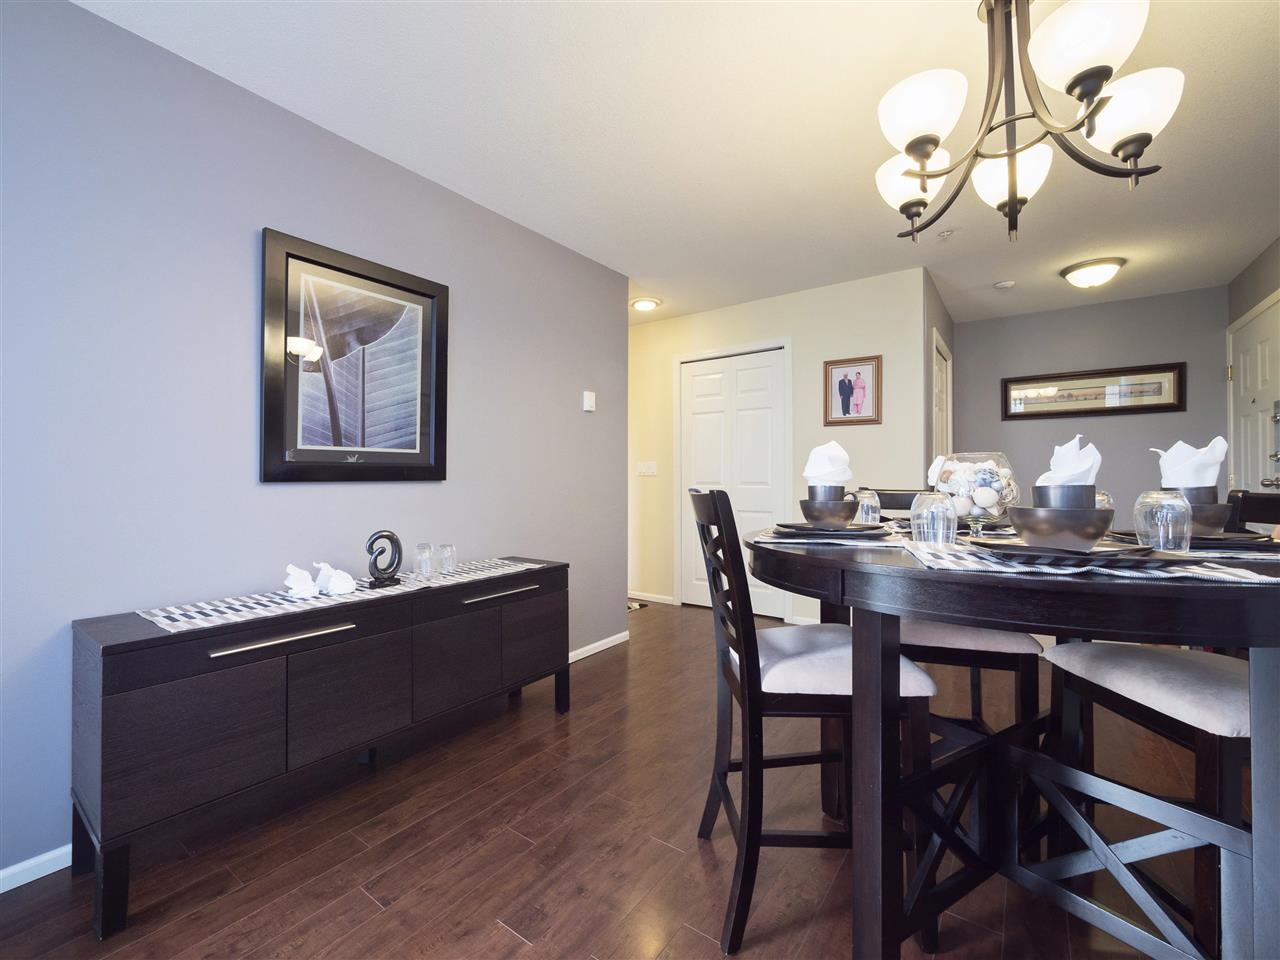 Condo Apartment at 301 1558 GRANT AVENUE, Unit 301, Port Coquitlam, British Columbia. Image 4